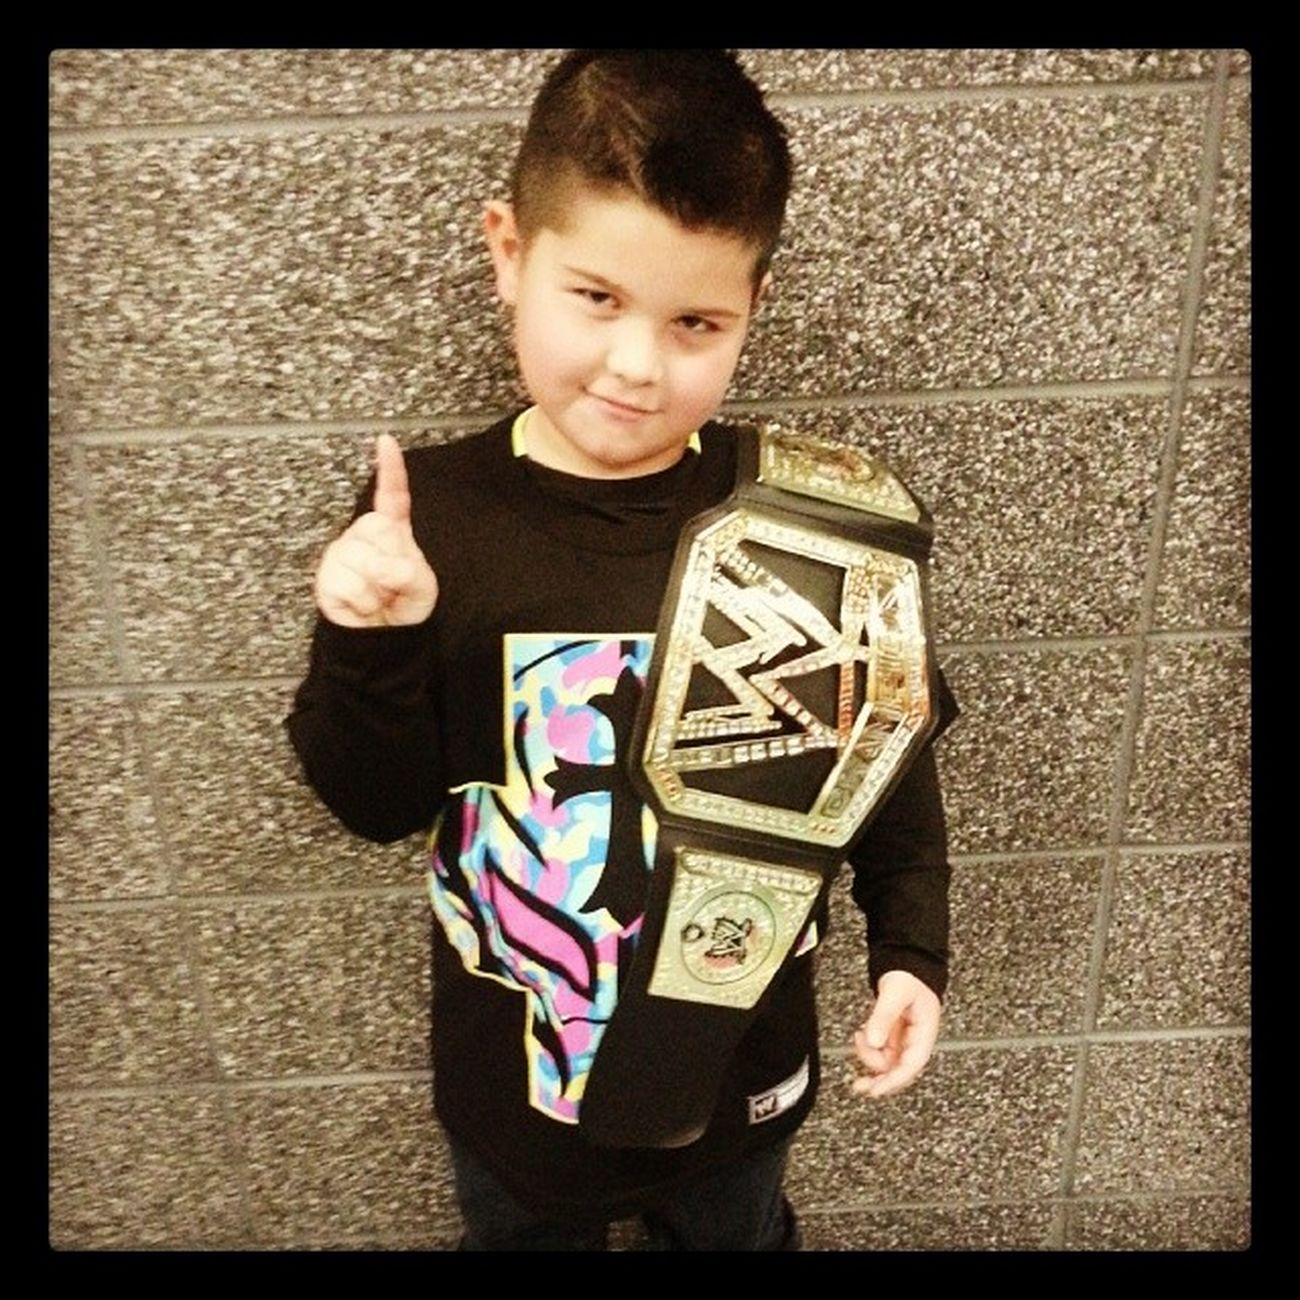 New WWE Champ. ...